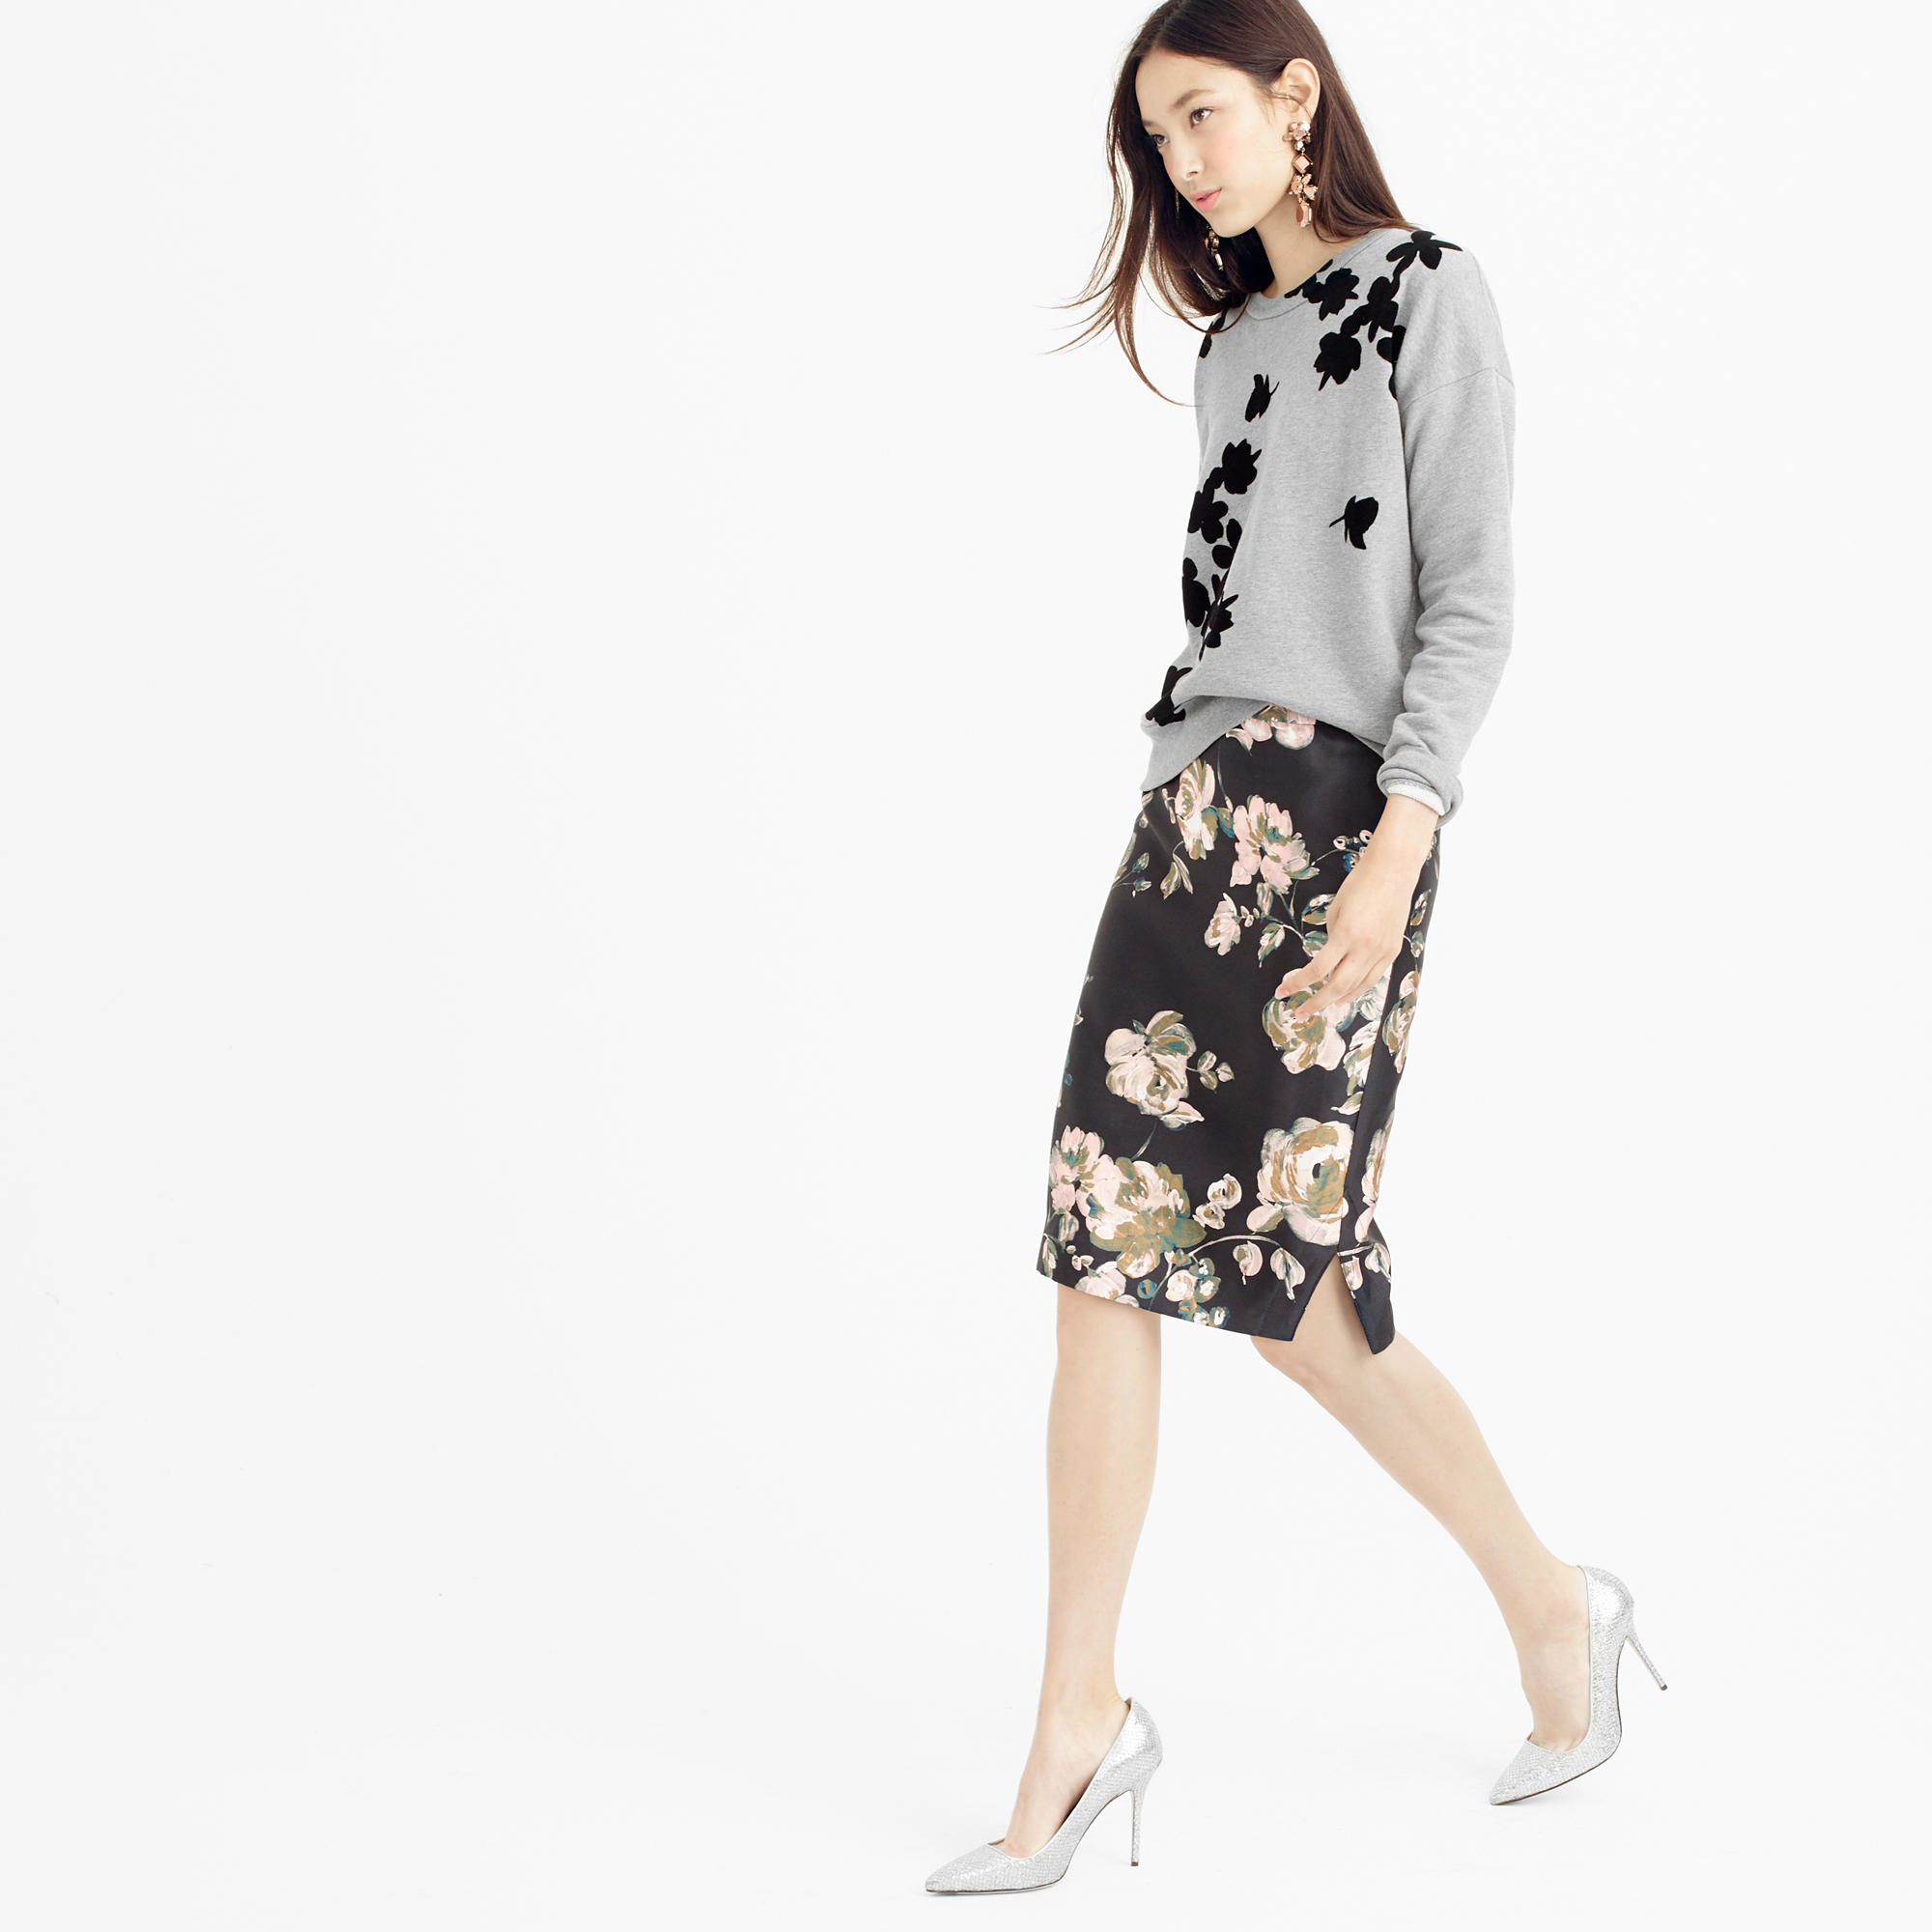 ee8f8872b111 Lyst - J.Crew Collection Pencil Skirt In Painterly Floral